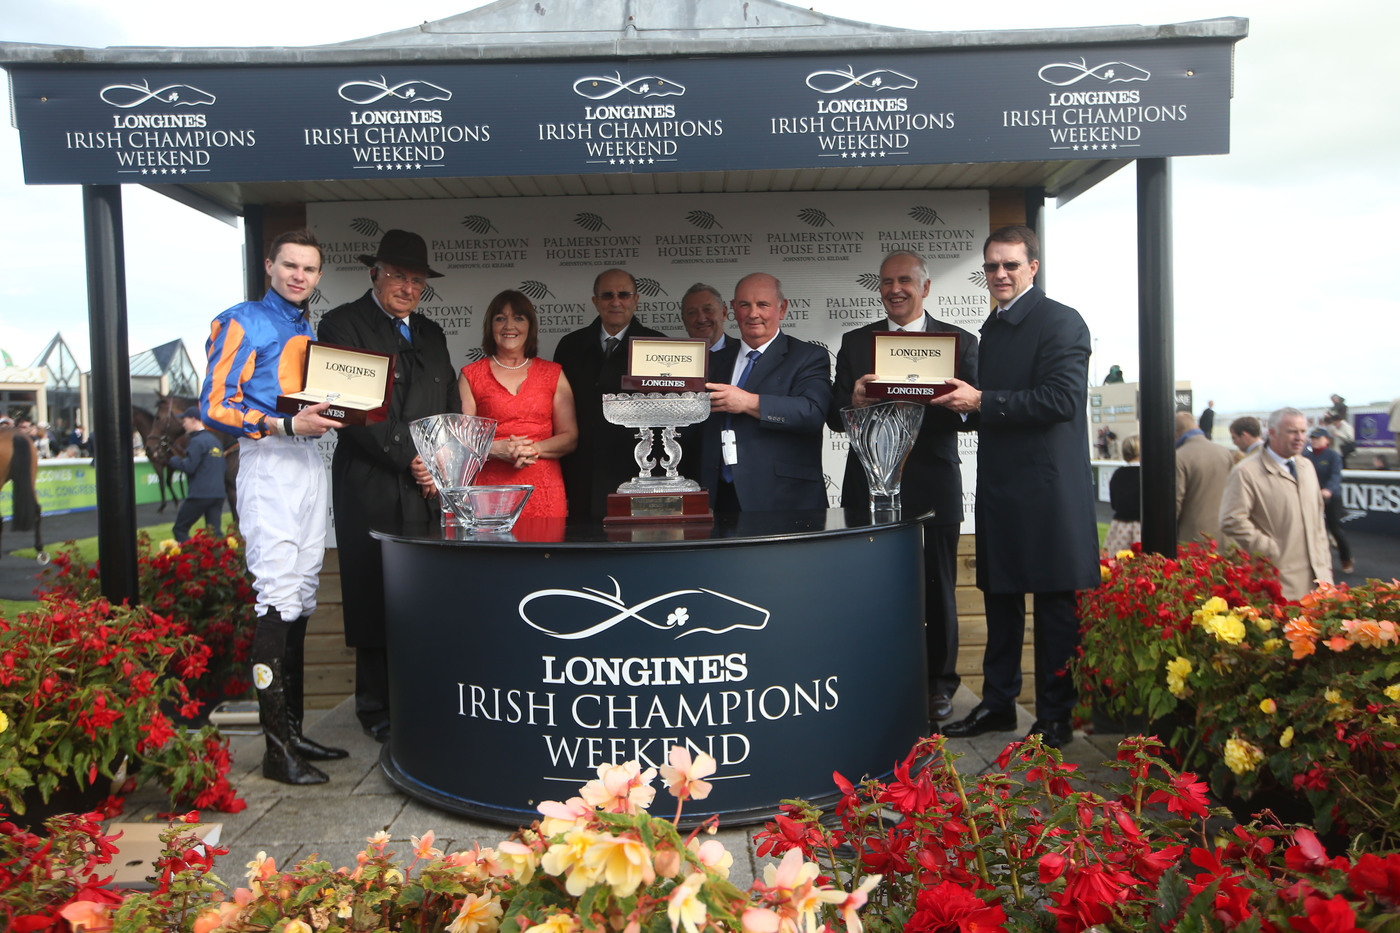 Longines Flat Racing Event: The Longines Irish Champions Weekend  10